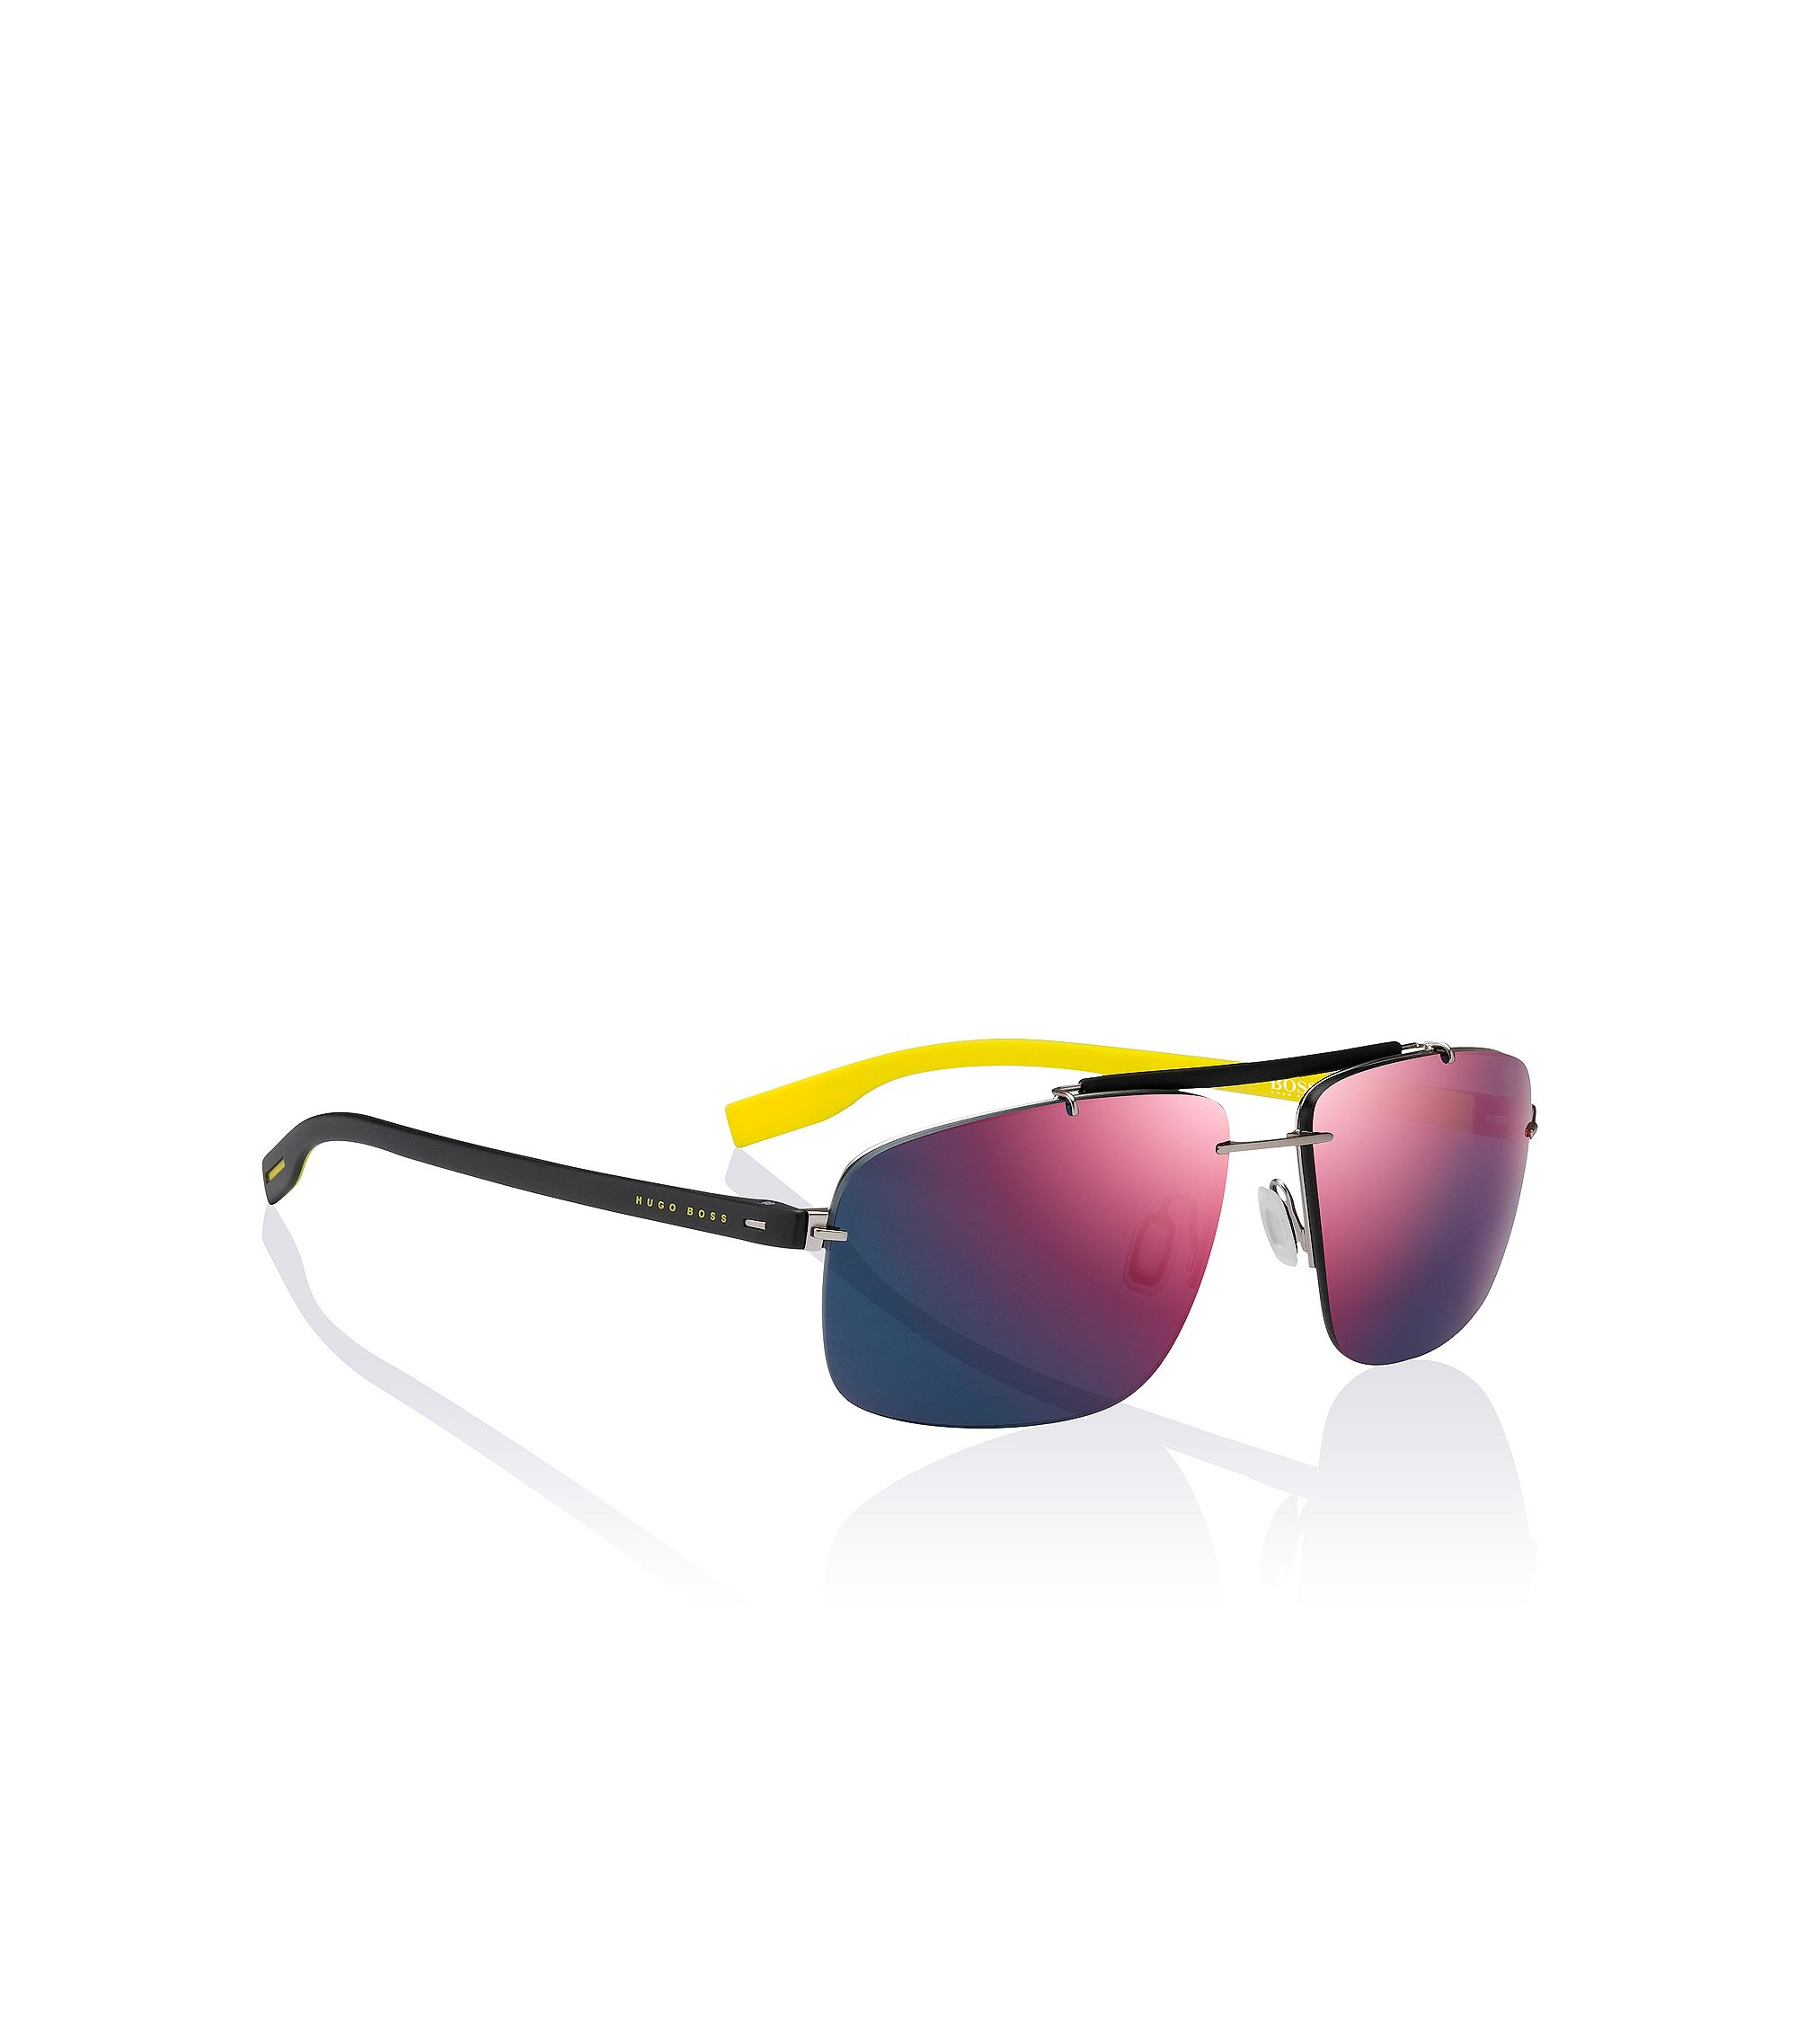 Sunglasses 'BOSS 0608/S', International Collection, Assorted-Pre-Pack